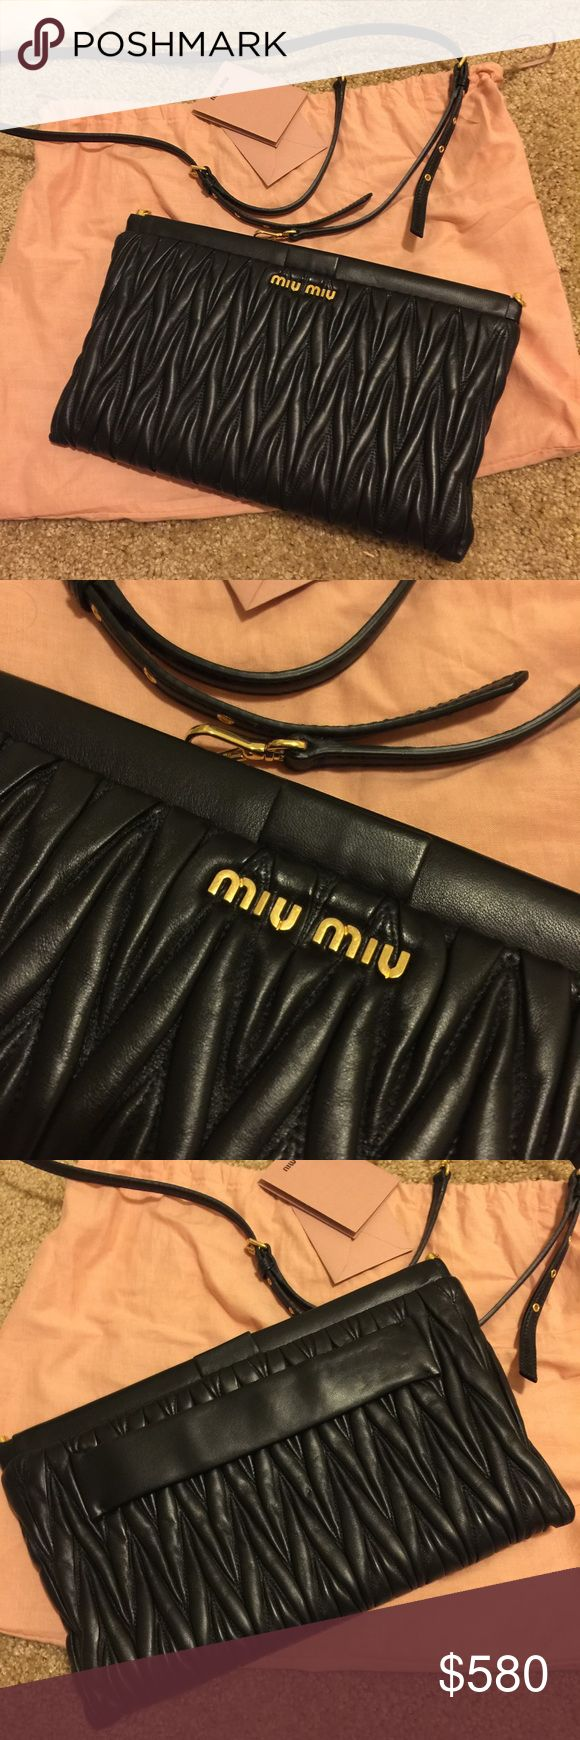 Miu Miu matelasse clutch 100% authentic. Used less than five times. No damages at all. Just like brand new. Comes with dustbag, authenticity card (covers manufacturing defects) Can be worn as a crossbody or clutch. Look at more pictures. Leave a comment if interested Miu Miu Bags Crossbody Bags